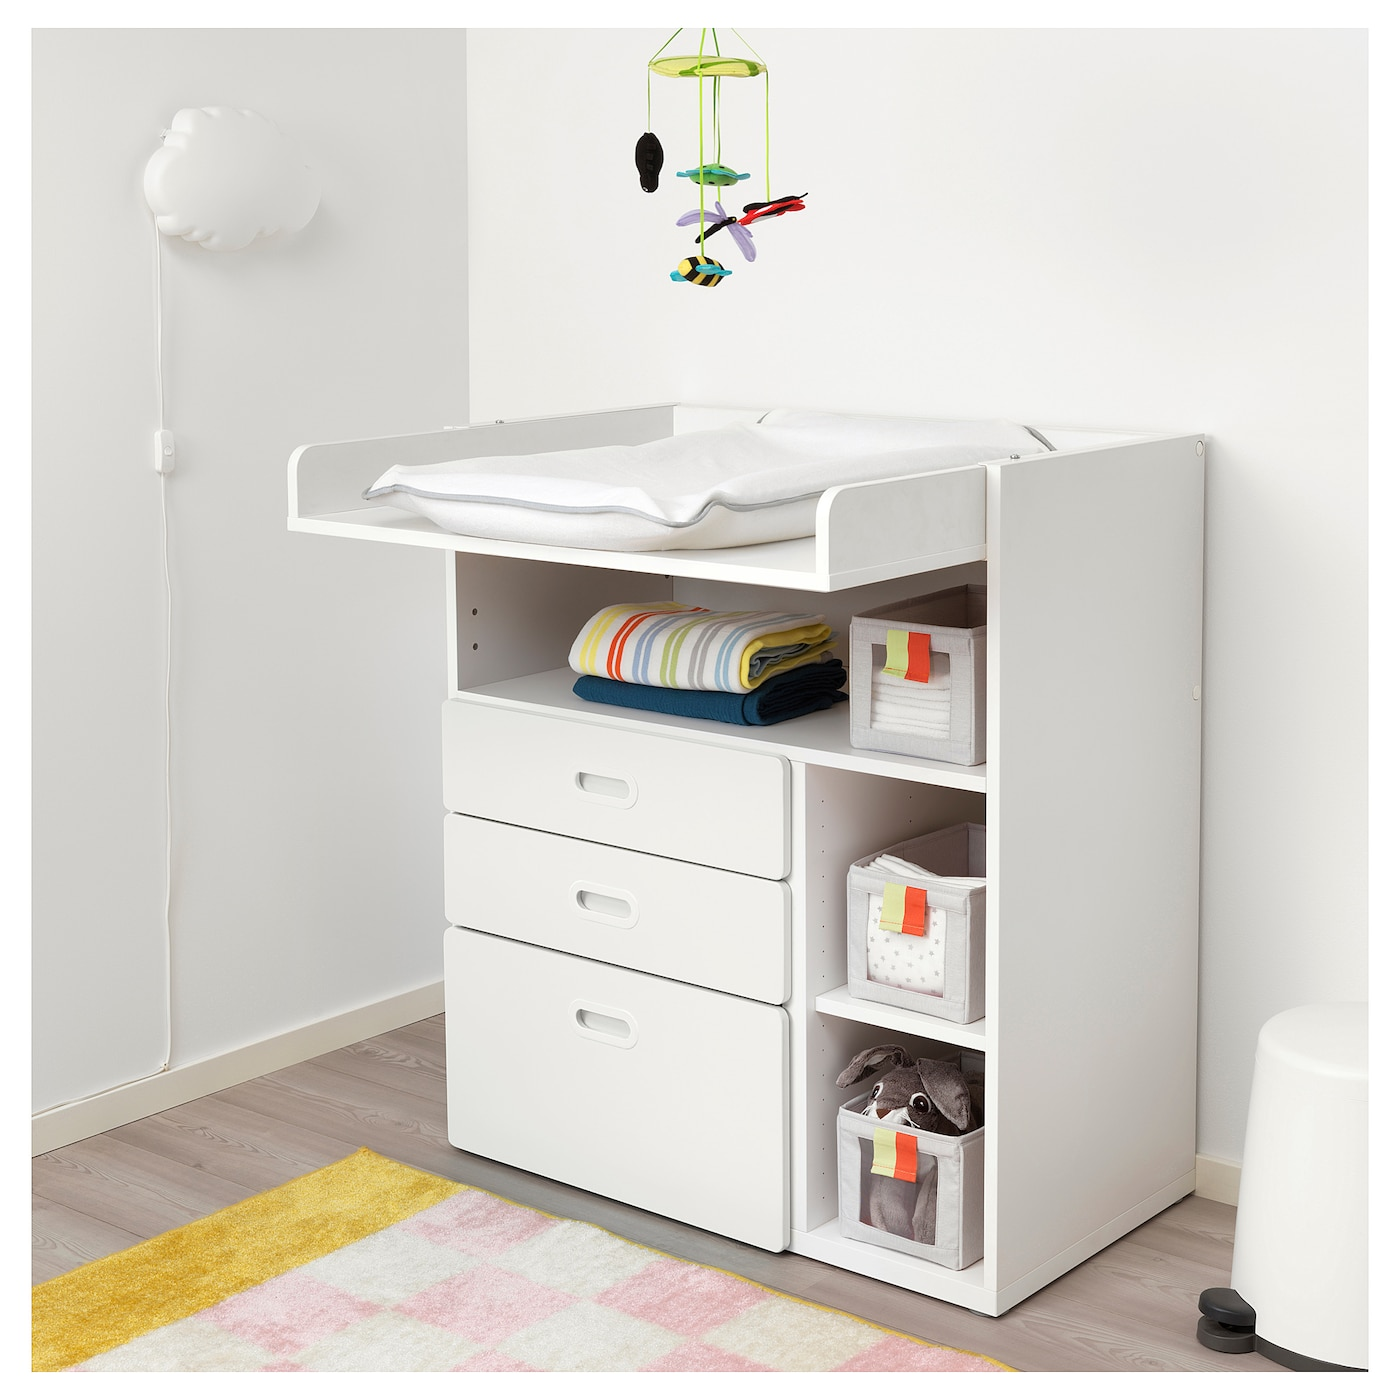 STUVA / FRITIDS Changing table with drawers, white/white, 90x79x102 cm